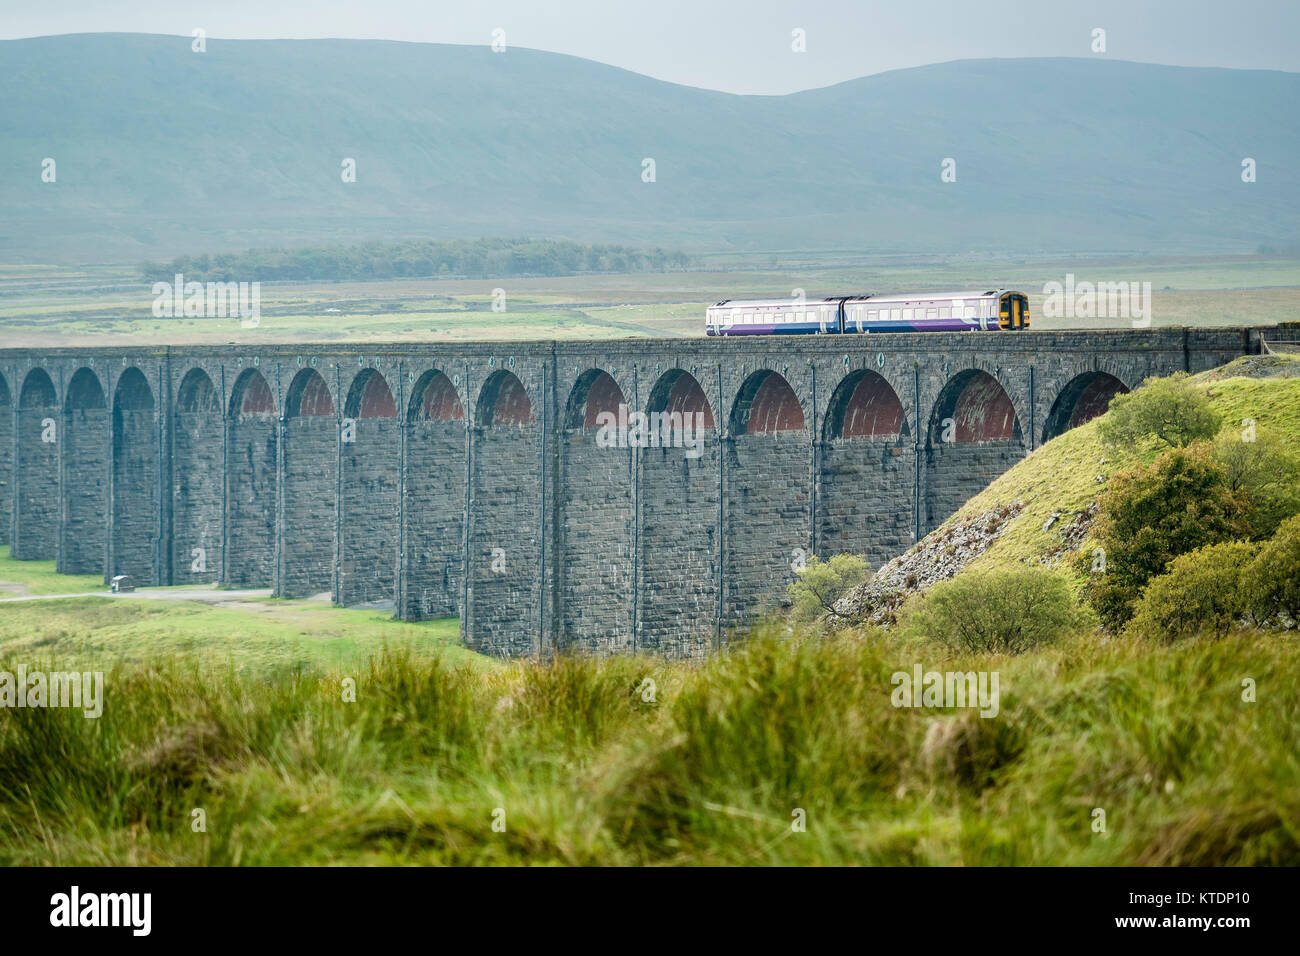 Great Britain, England, District Yorkshire Dales, Ribblehead Viaduct, Carlisle - Stock Image